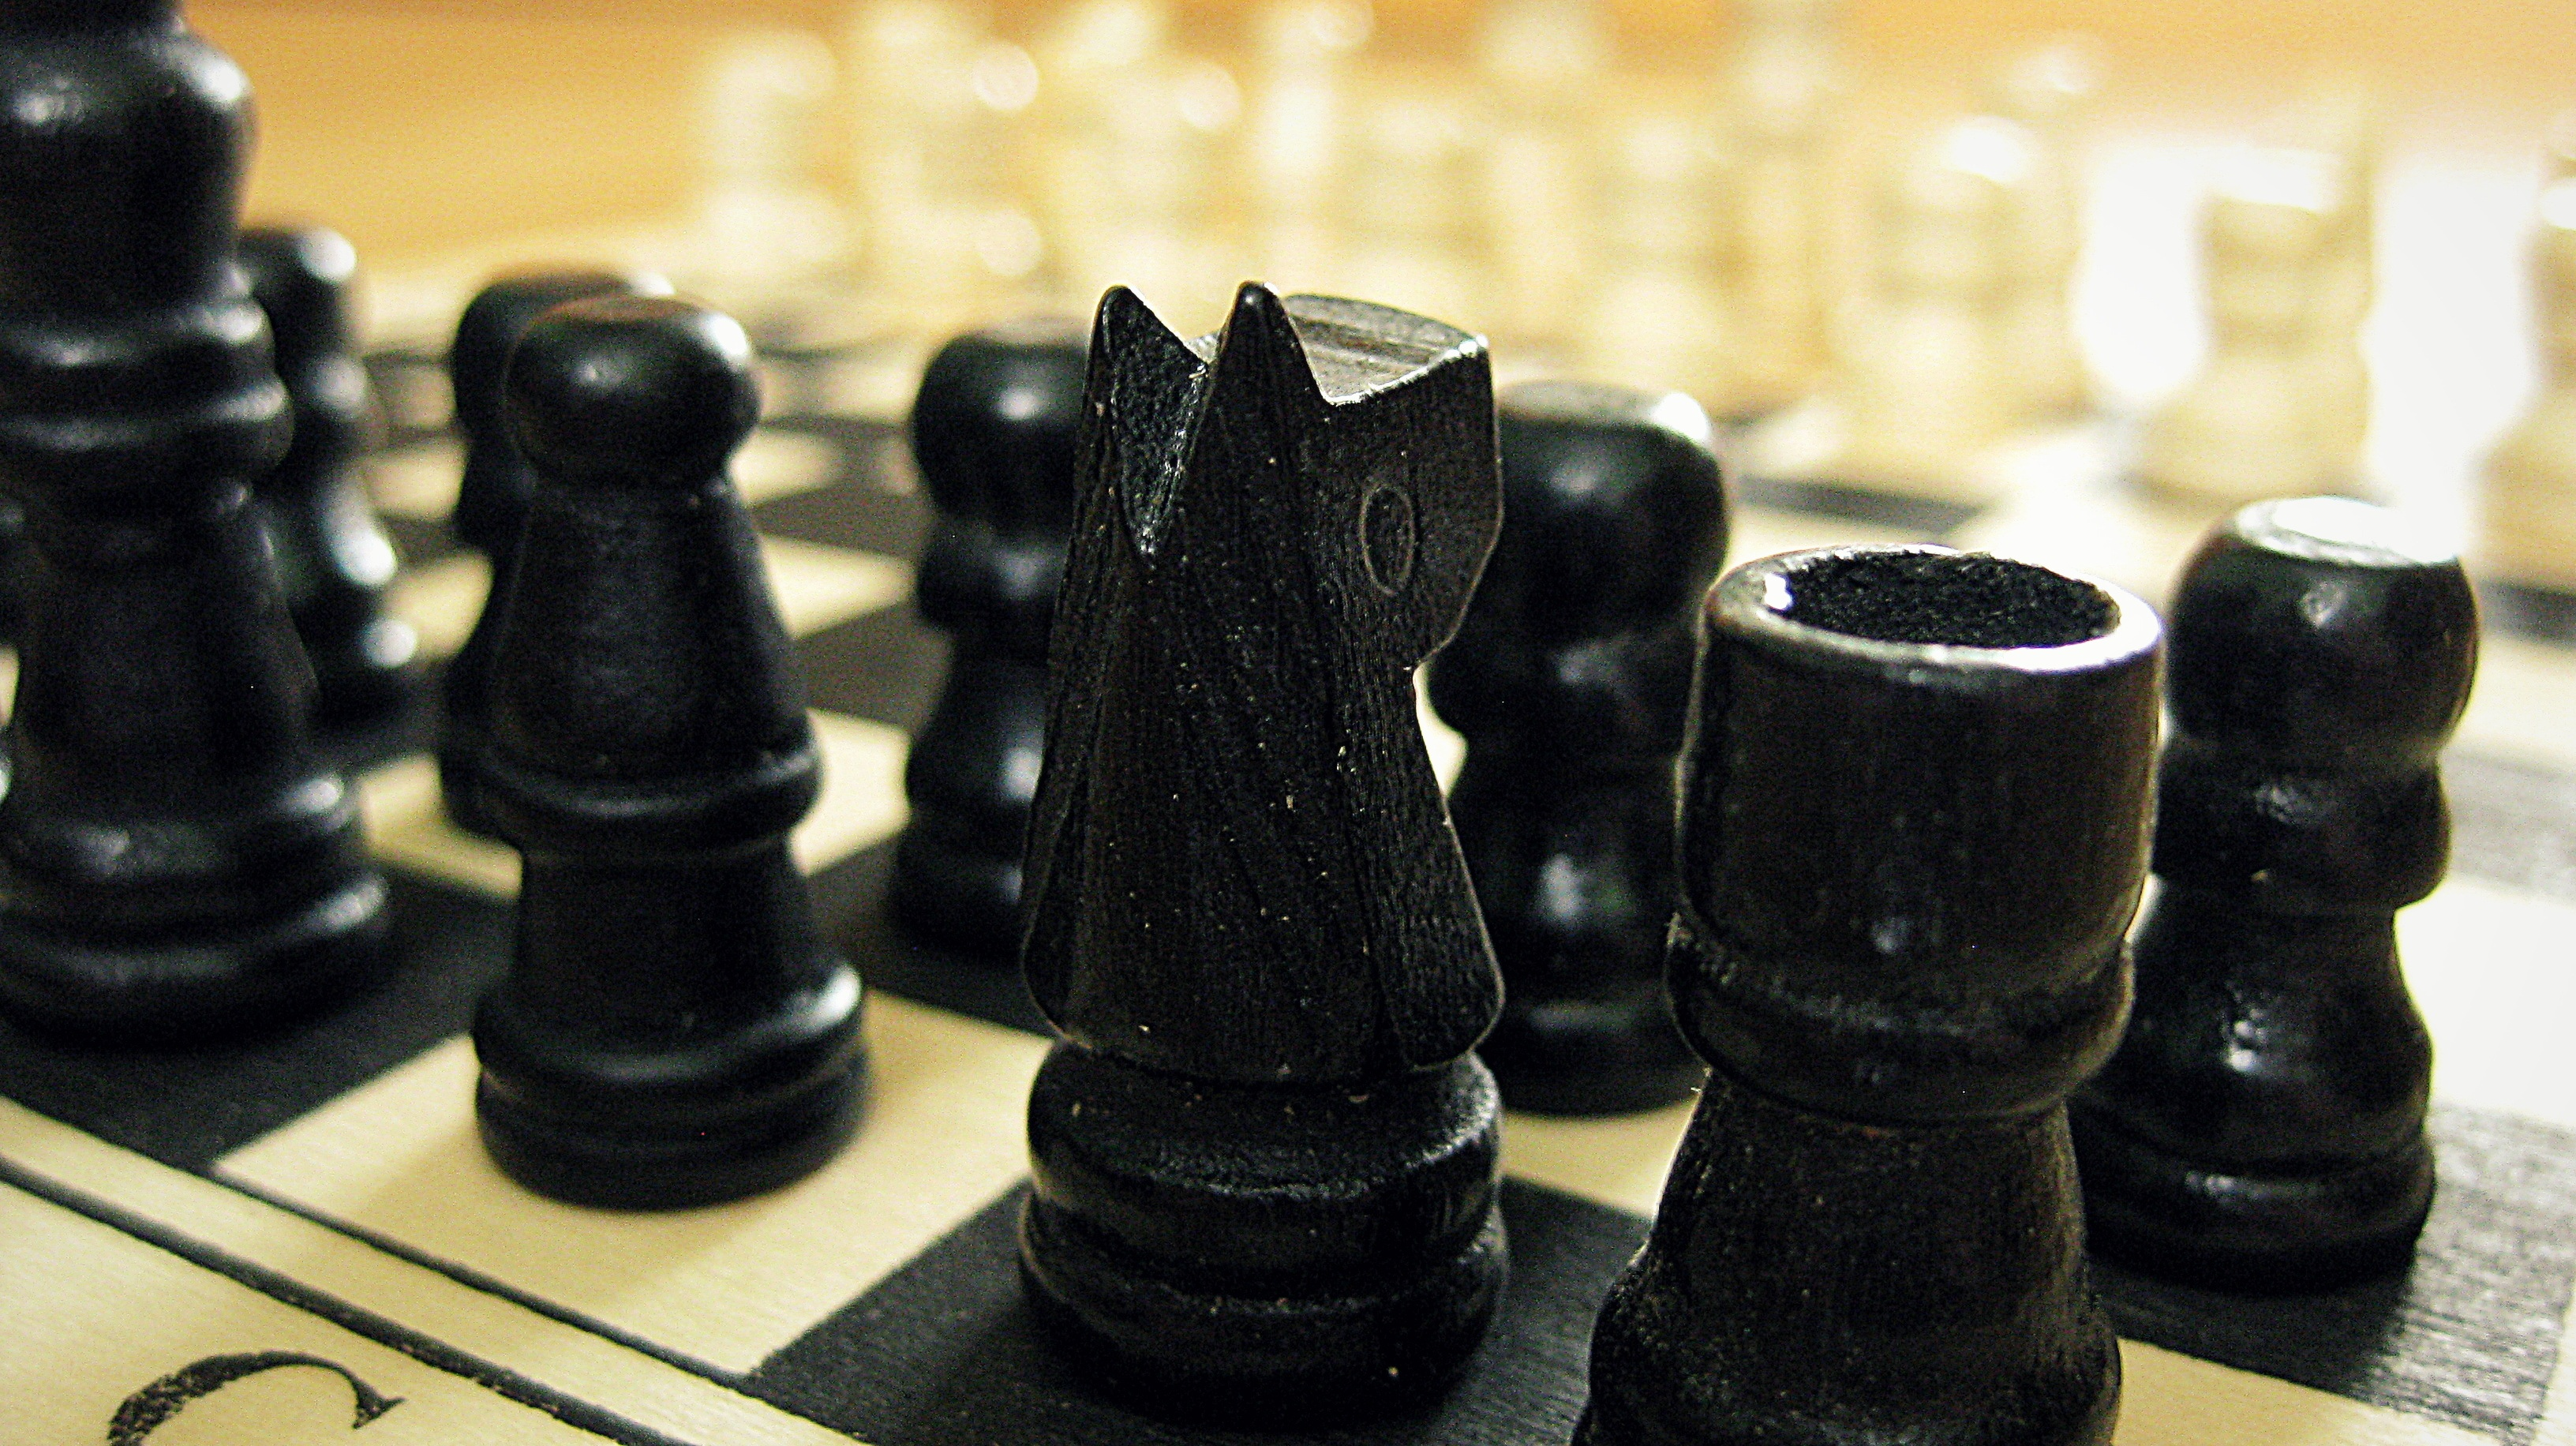 https://static.pexels.com/photos/52993/chess-game-strategy-intelligence-52993.jpeg